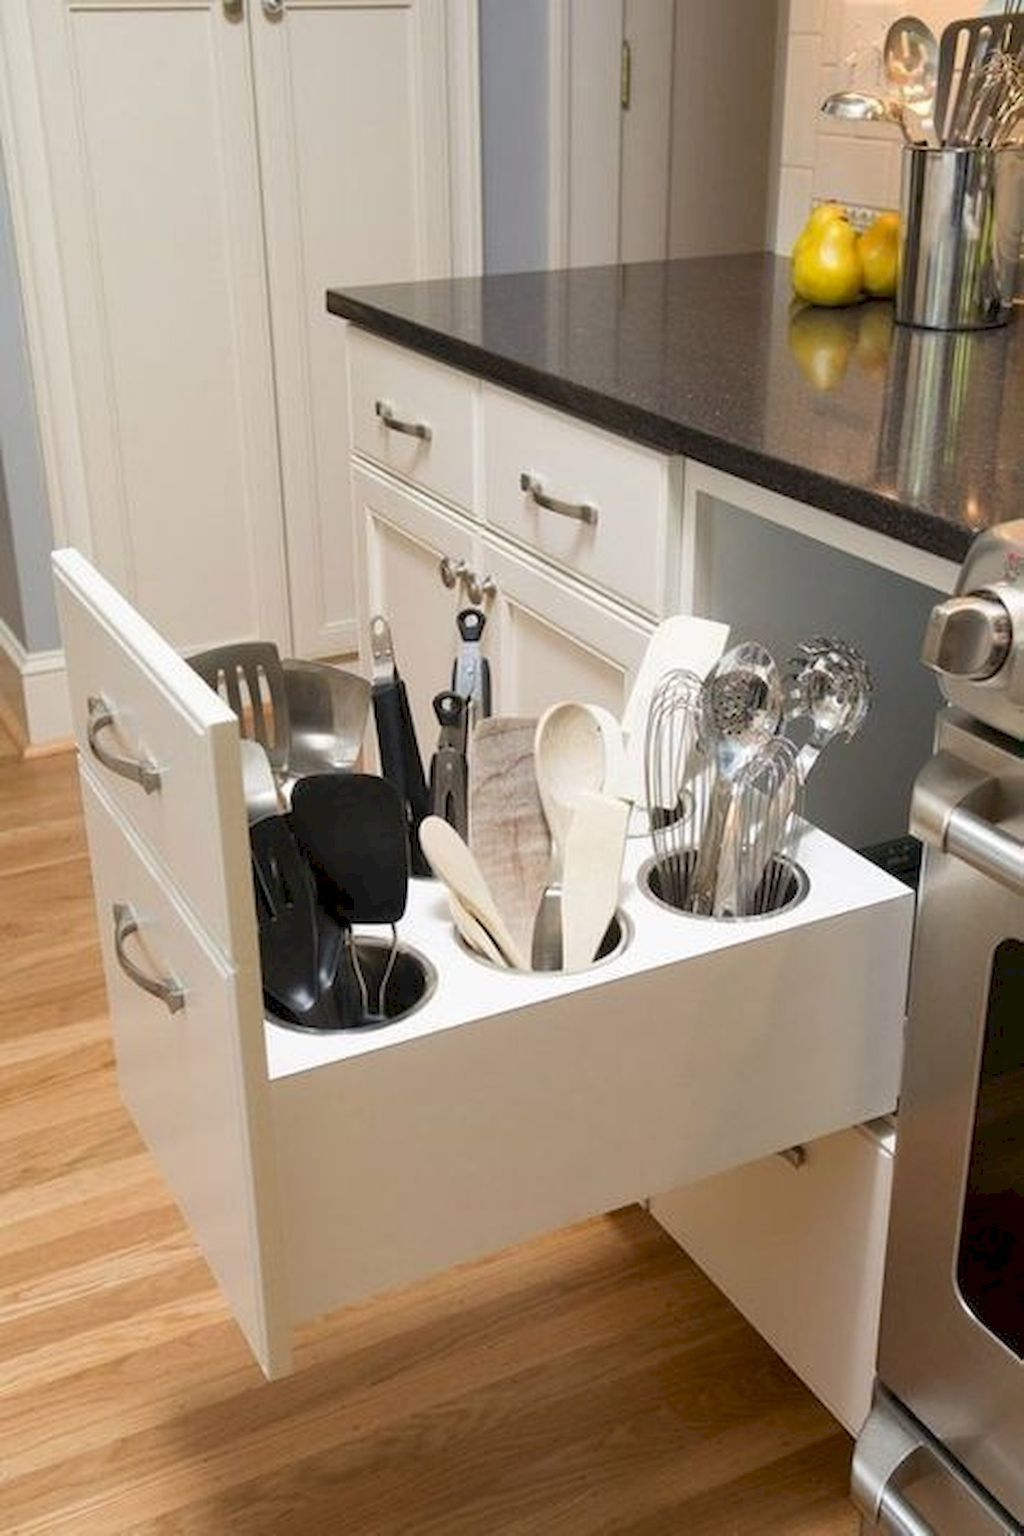 Best Kitchen Organization and Storage Ideas to Make the Kitchen Looks Neat and Clean Part 7…